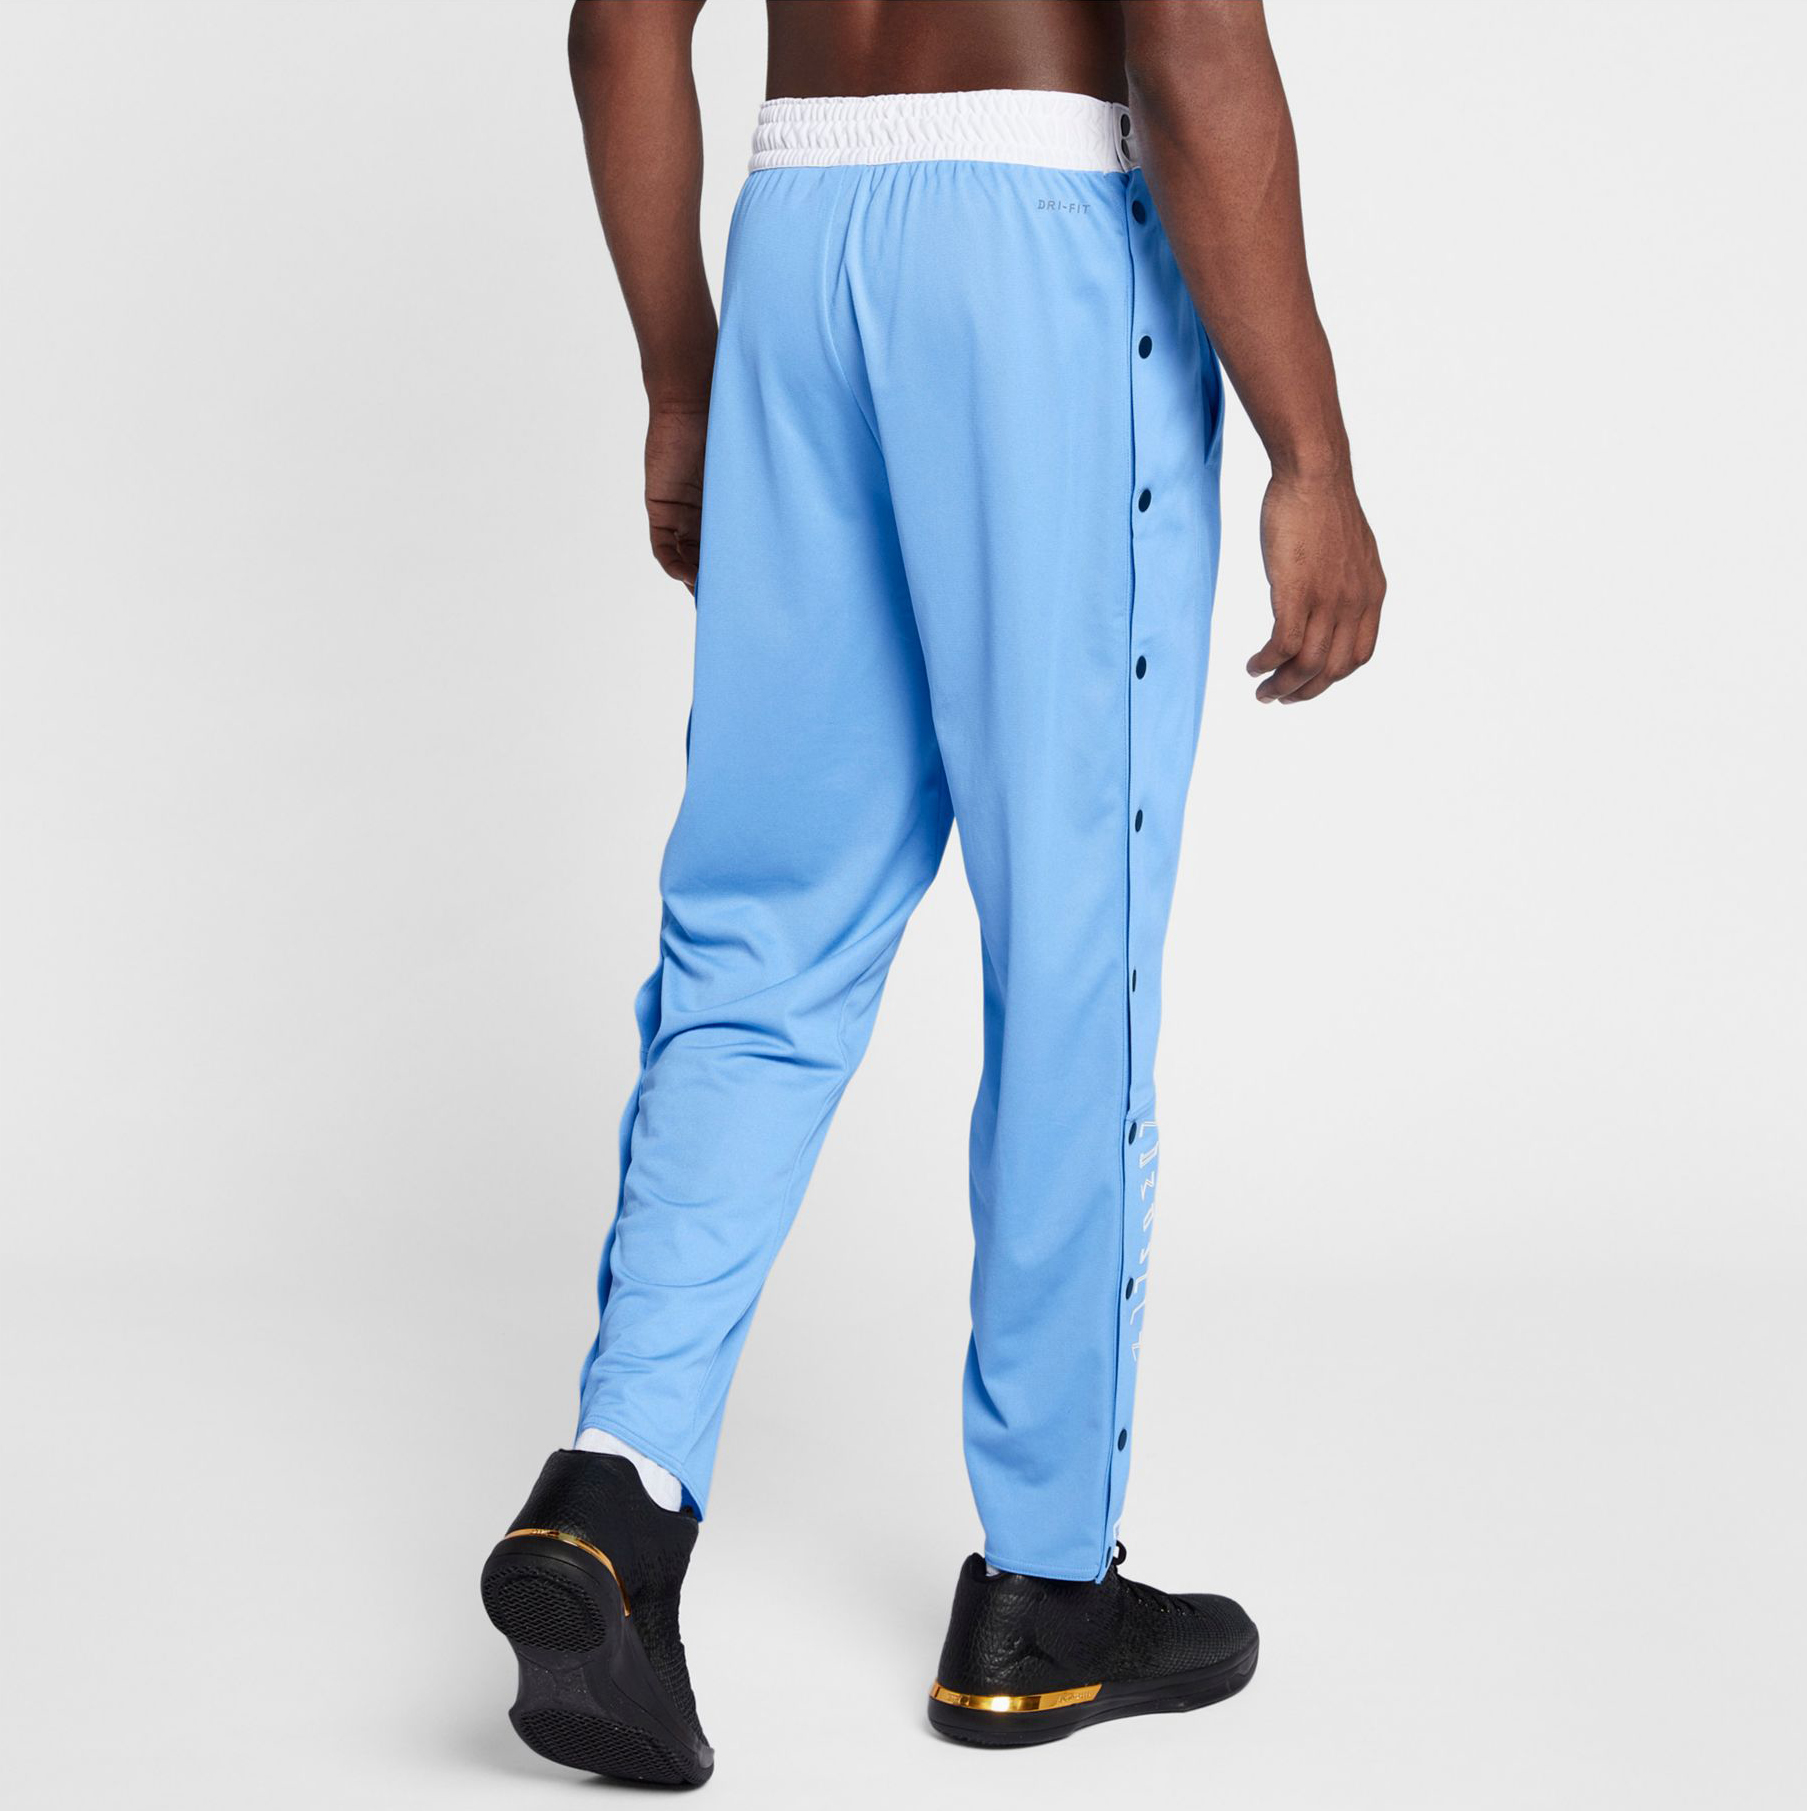 jordan-11-win-like-82-unc-pants-2